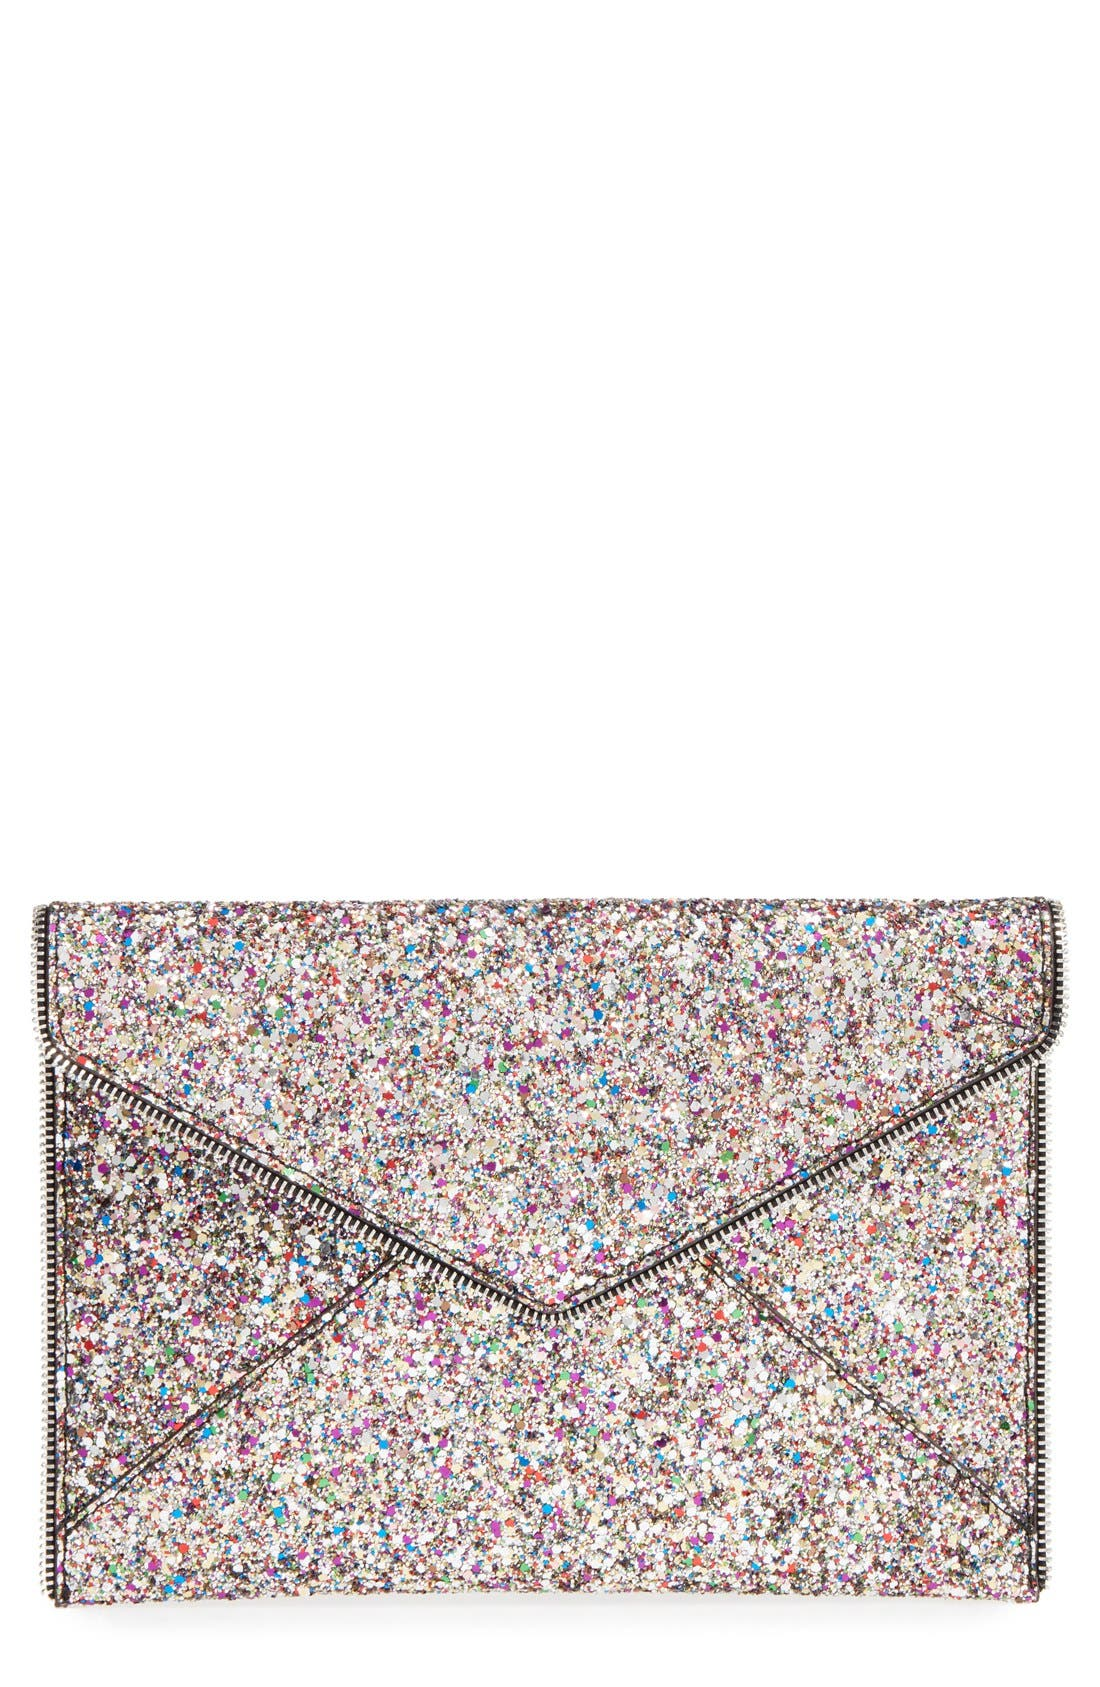 'Leo' Envelope Clutch,                             Main thumbnail 1, color,                             SILVER/ SILVER HRDWR